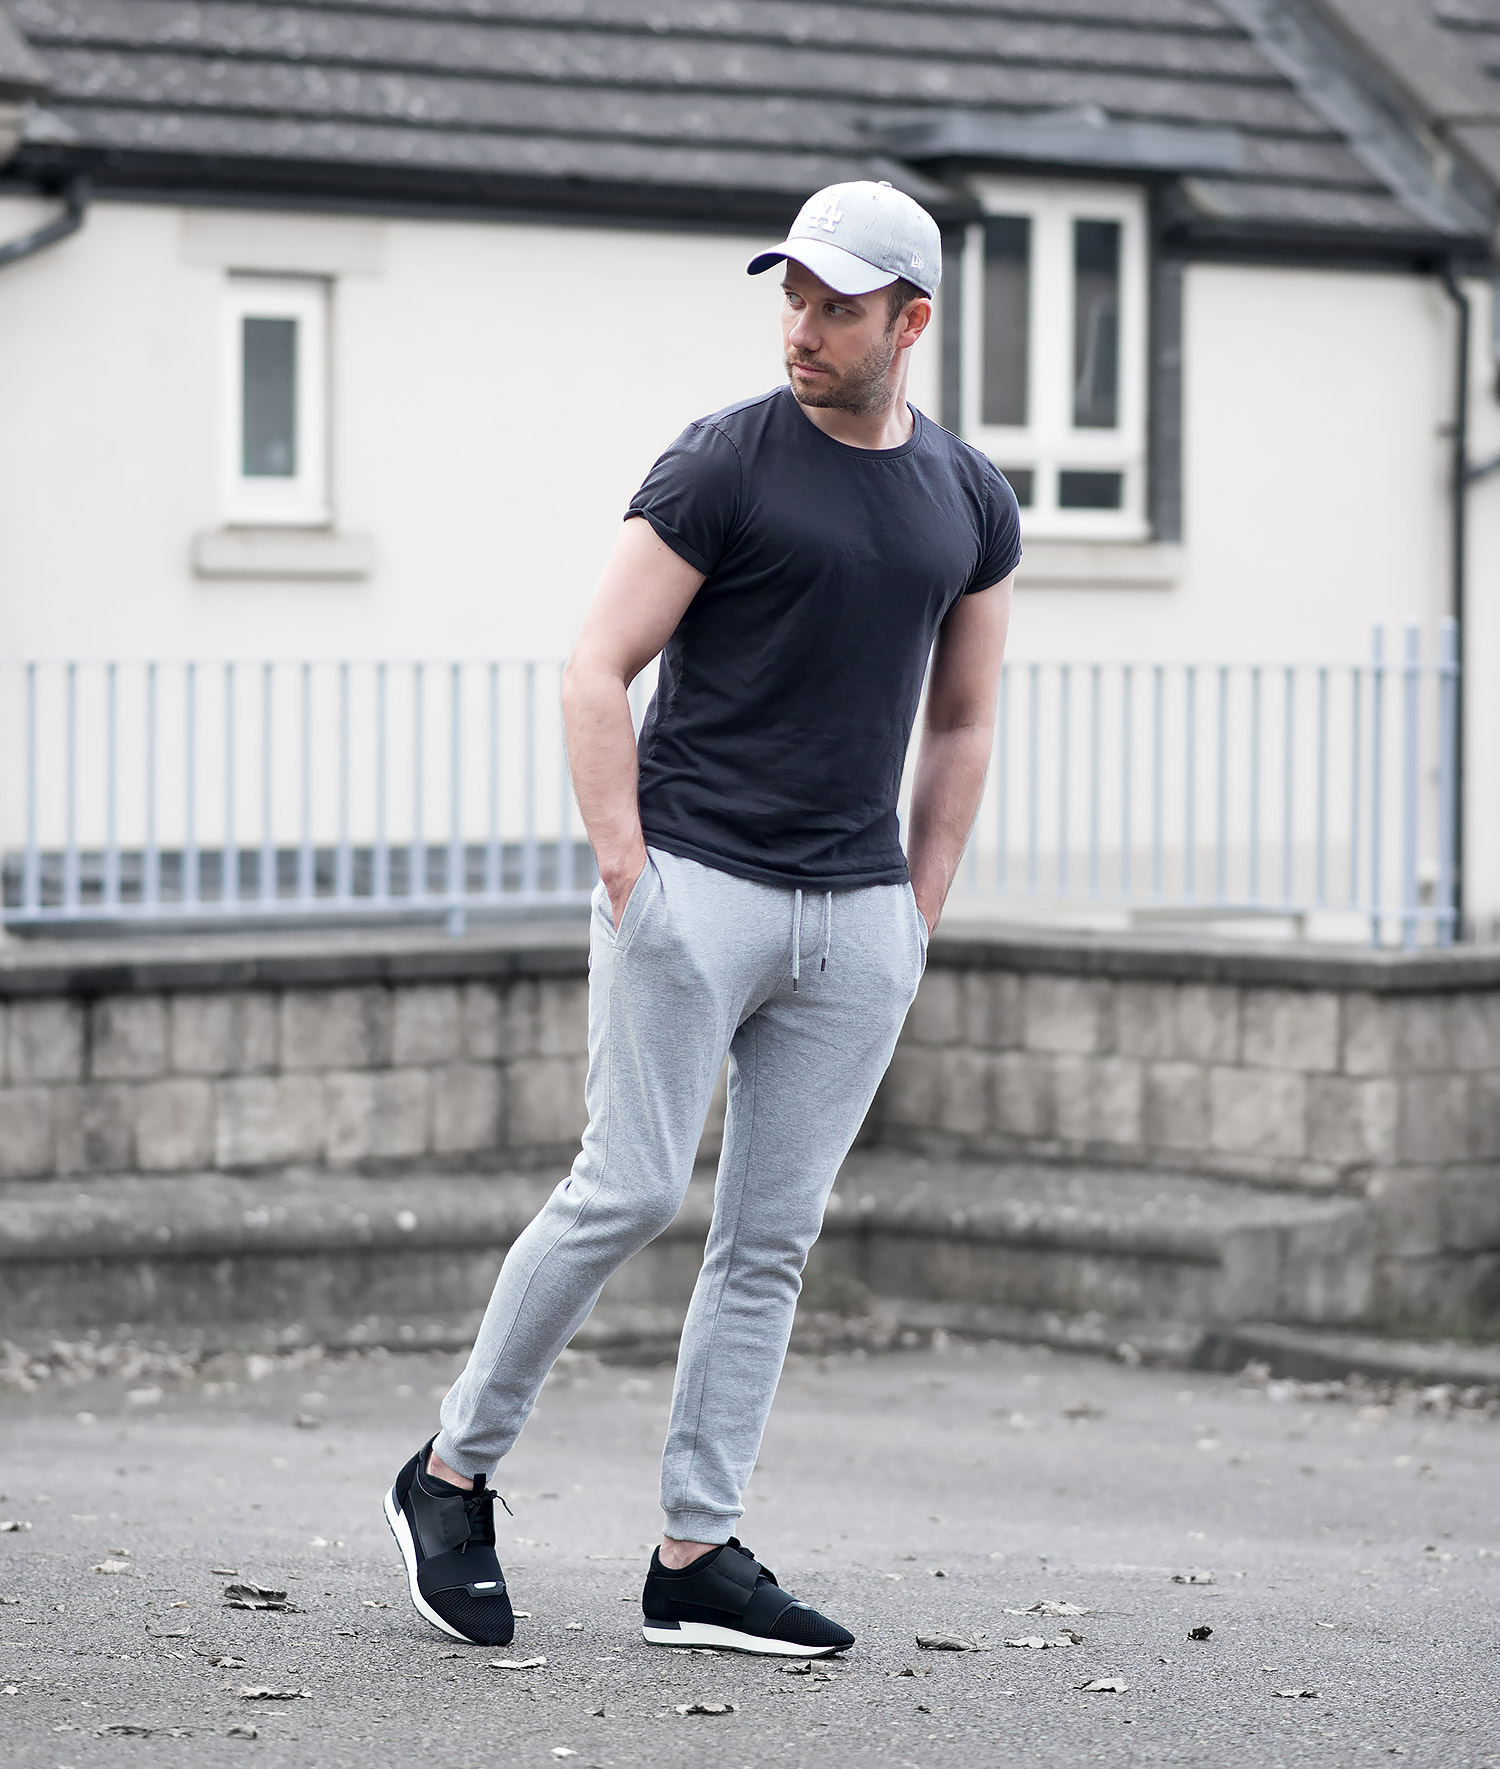 Topman Joggers And Balenciaga Race Runners Outfit   Your Average Guy